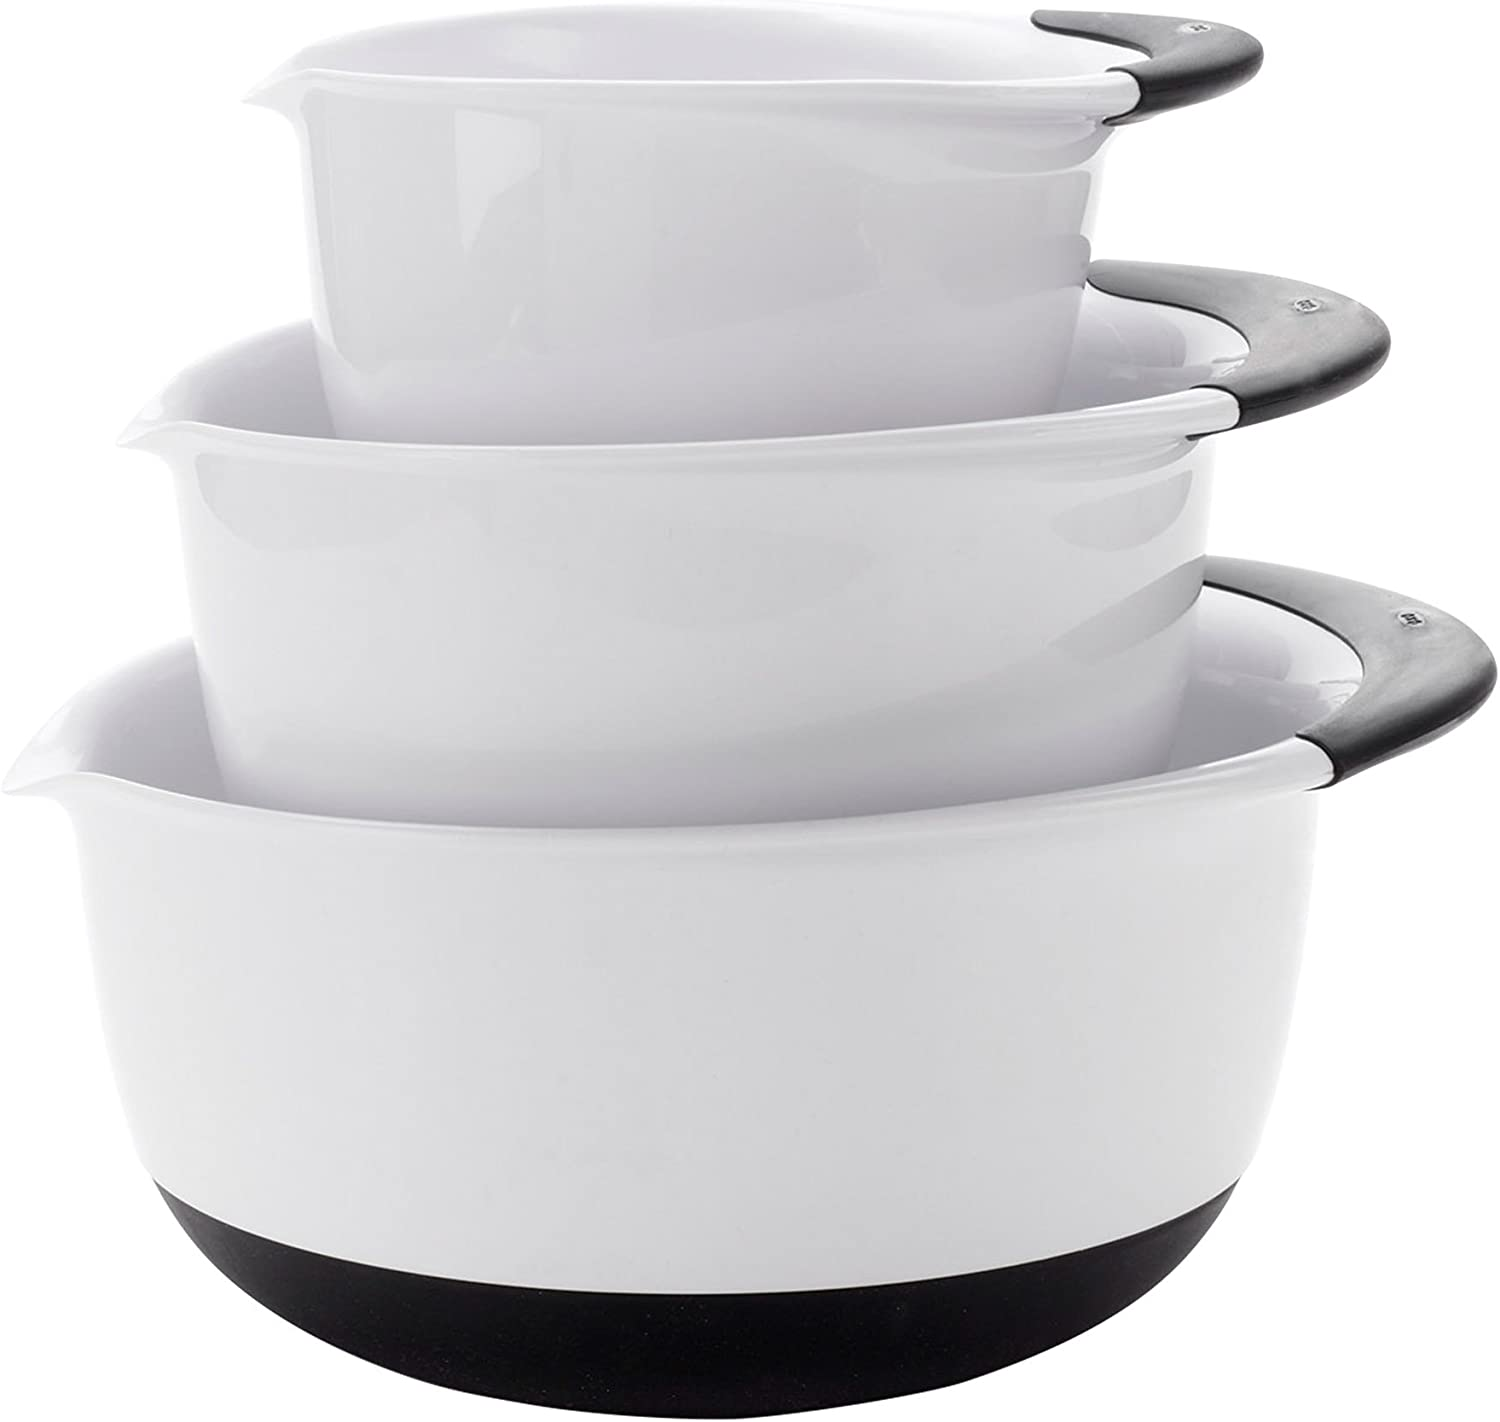 OXO 1066421 Good Grips Mixing Bowl Set with Black Handles, 3-Piece,White/Black